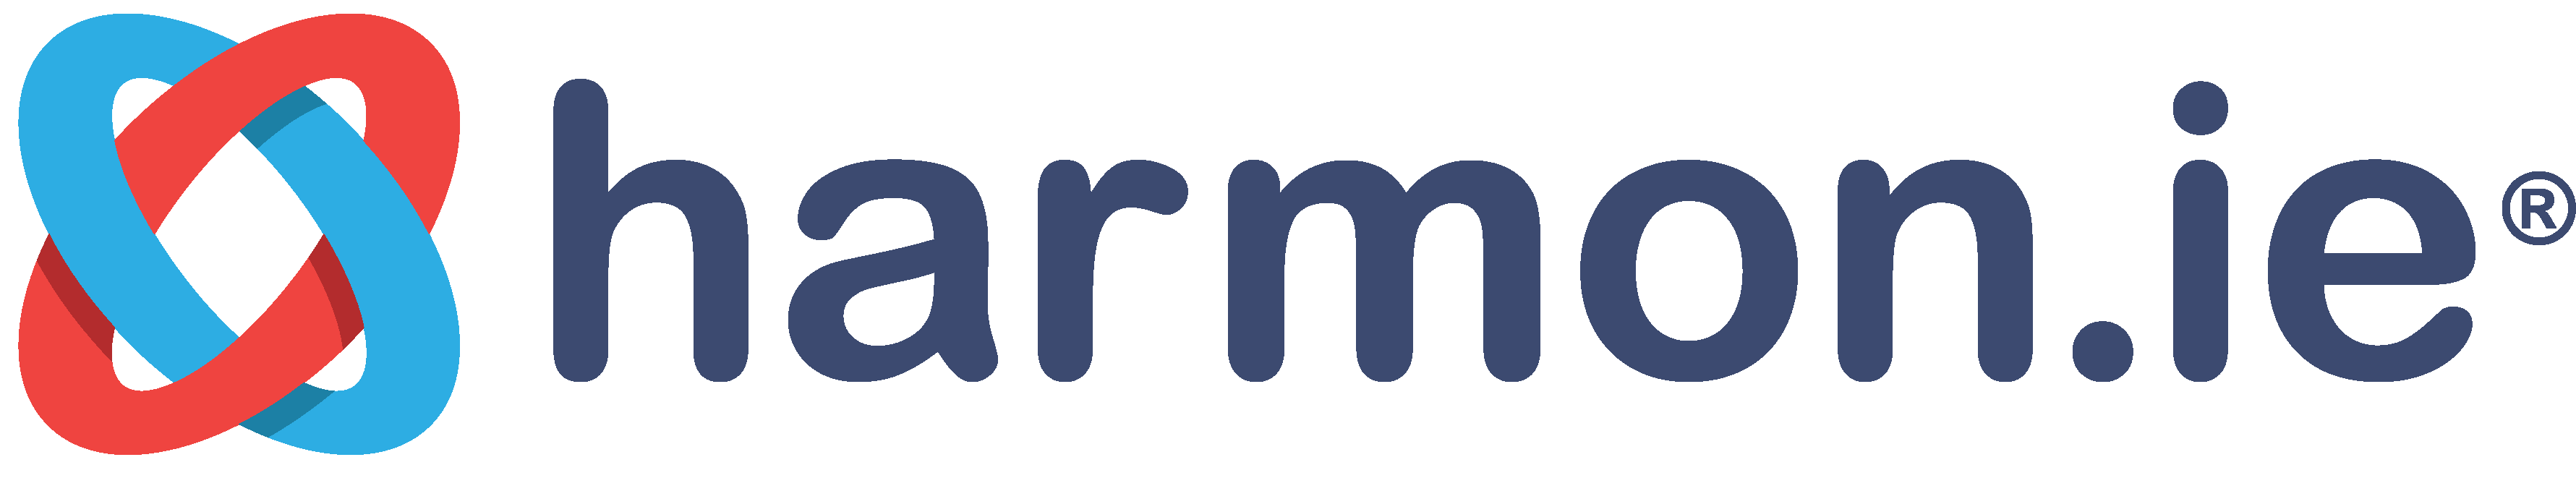 harmon.ie Humanizes Document and Email Capture